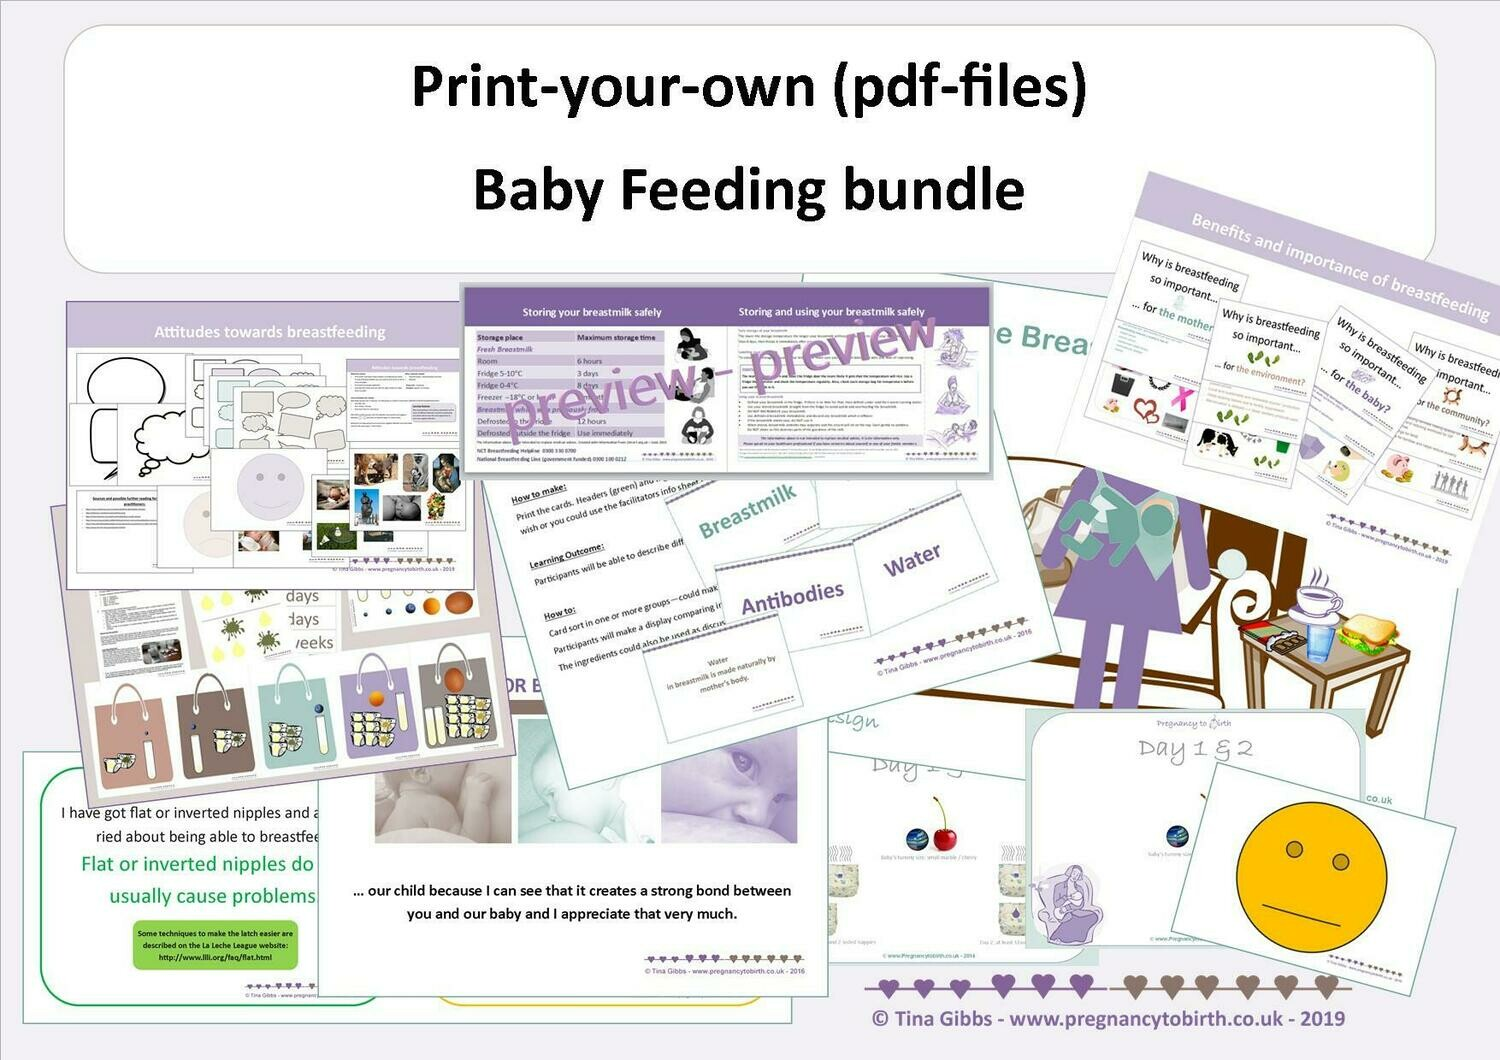 Baby Feeding Bundle (zip file containing pdf files)